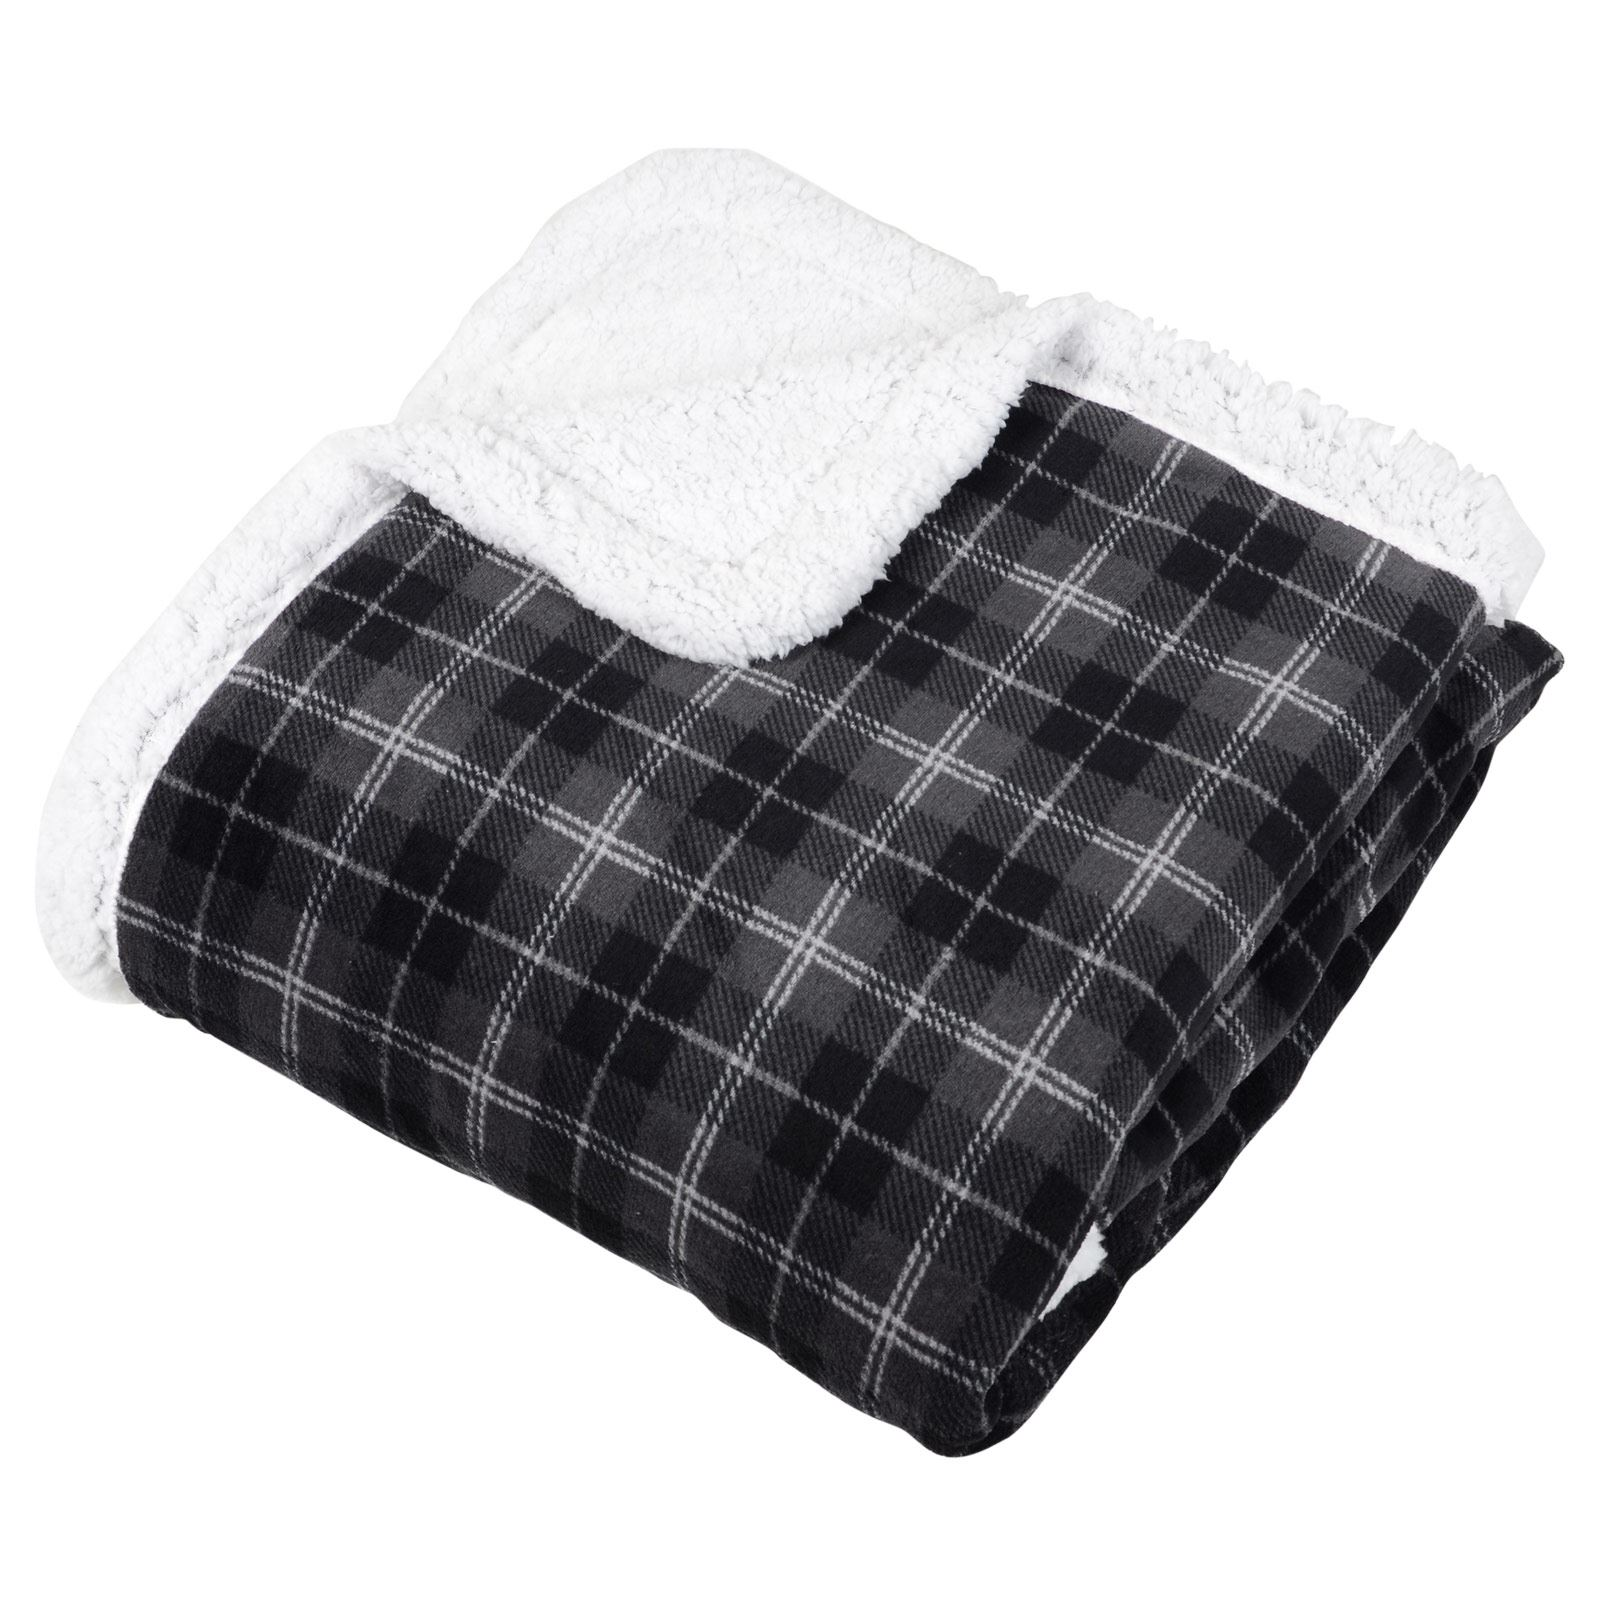 Warm fleece throw